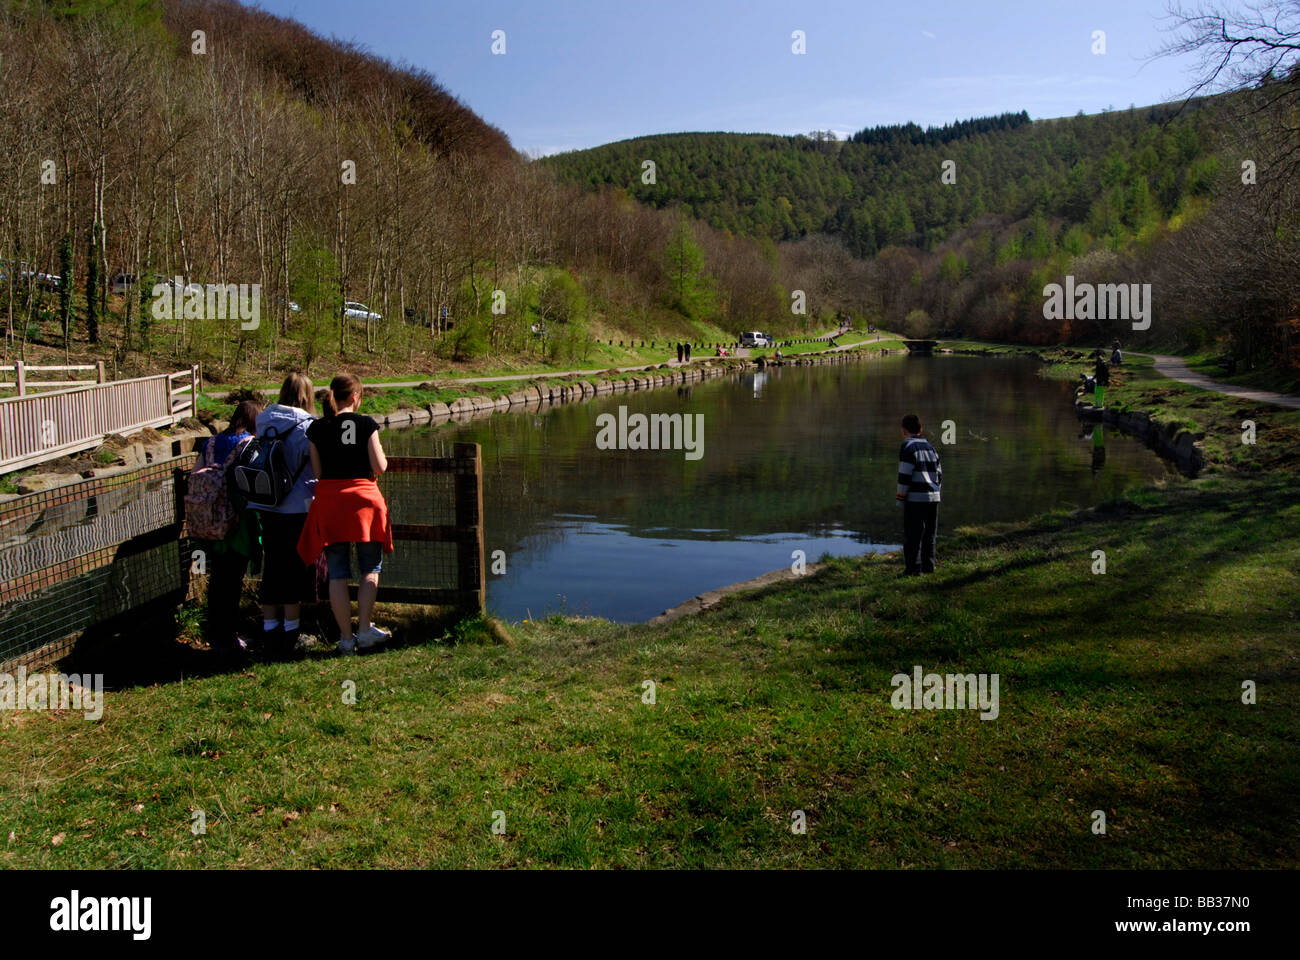 Cwmcarn Forest Drive Wales Stock Photo: 24043516 - Alamy